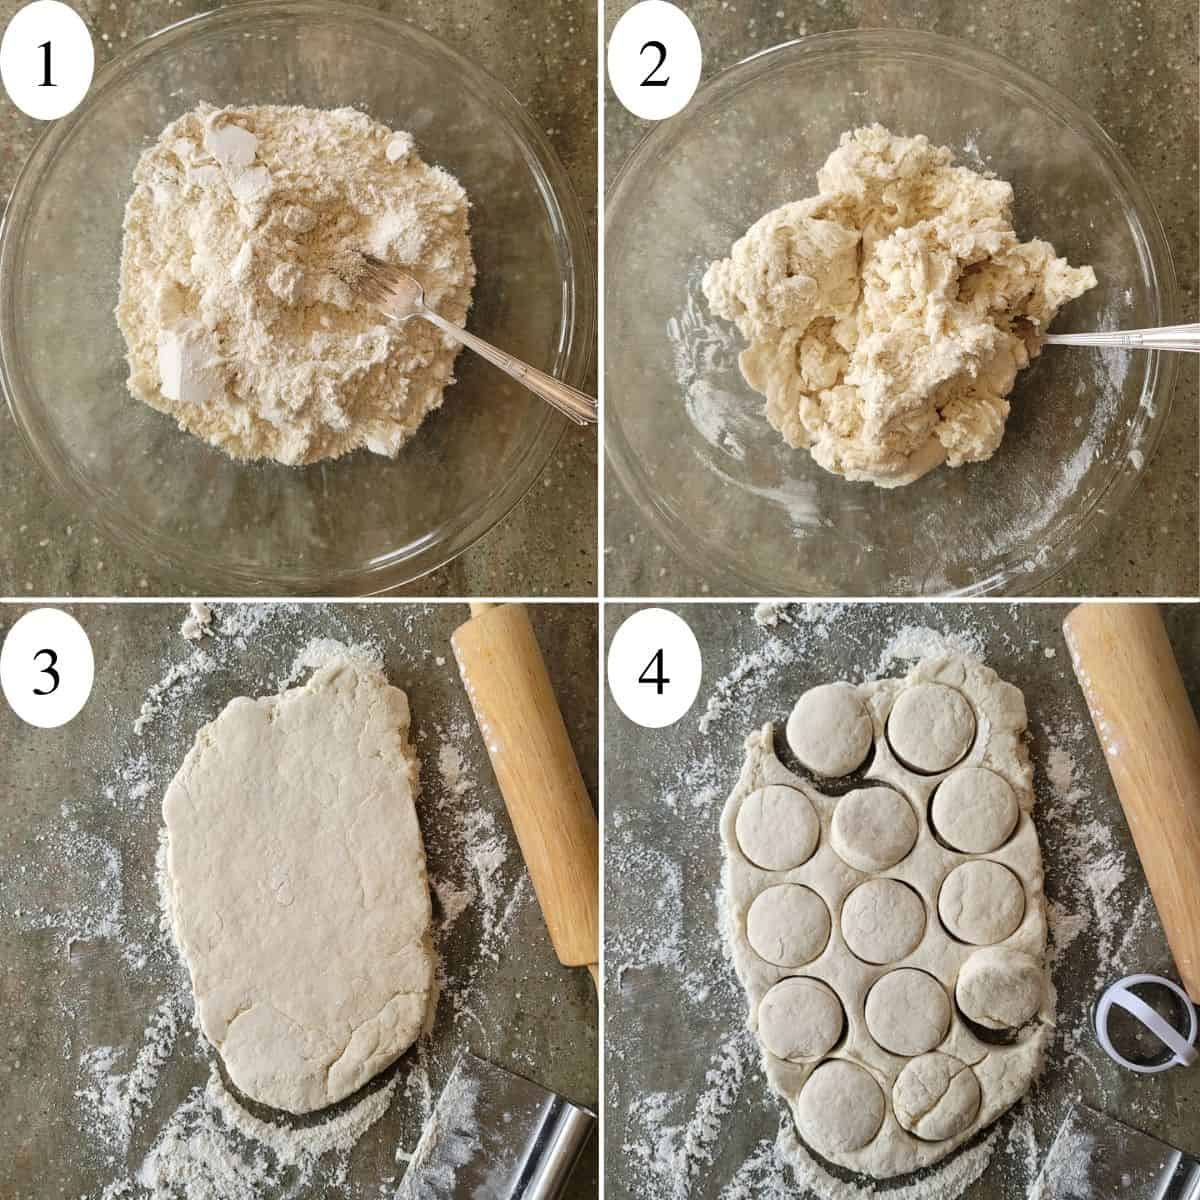 A four image collage showing the first 4 steps to making biscuits.